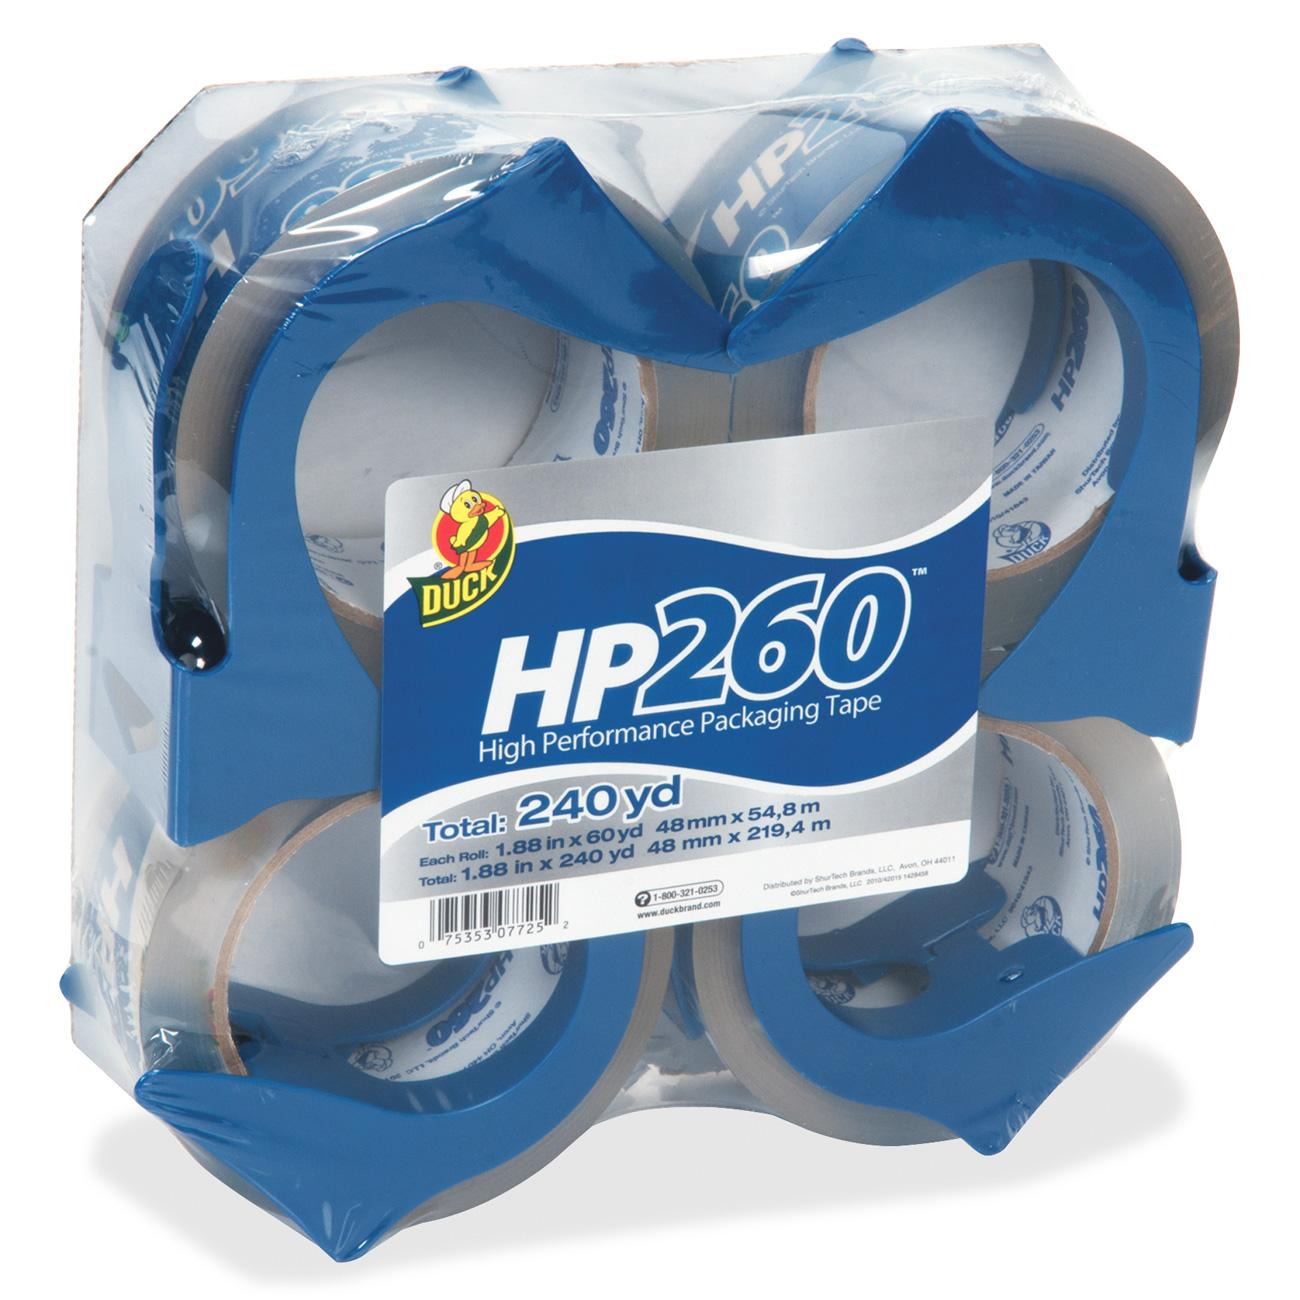 Duck HP260 Packaging Tape, 1.88 in. x 60 yd., Clear, 4-Count